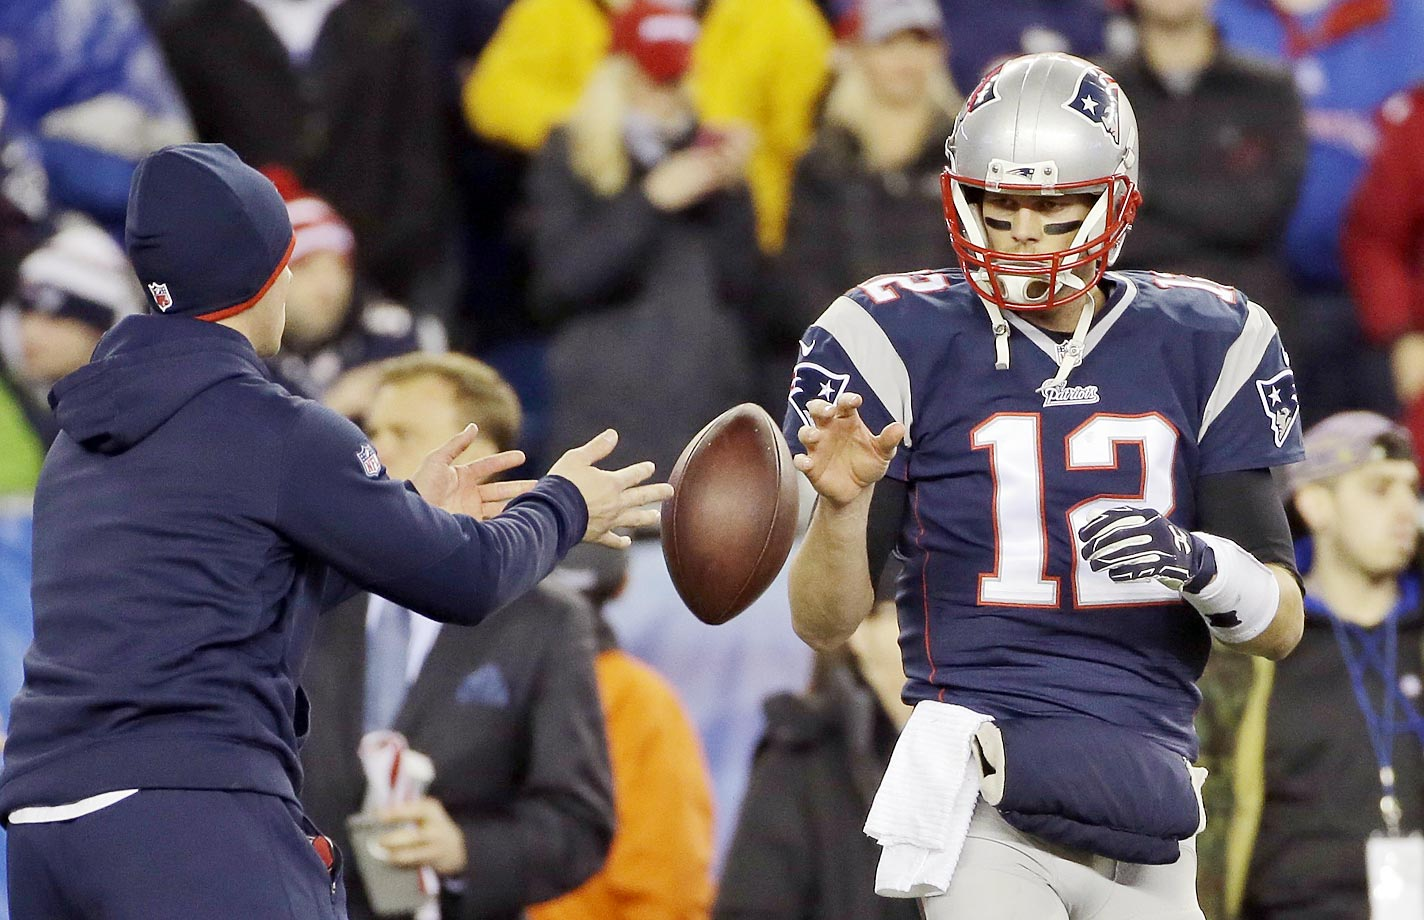 A United States appeals court reinstated Tom Brady's four-game suspension on April 25, 2016, which the NFL originally handed down for his alleged role in a scheme to deflate footballs before the AFC Championship Game on Jan. 18, 2015.